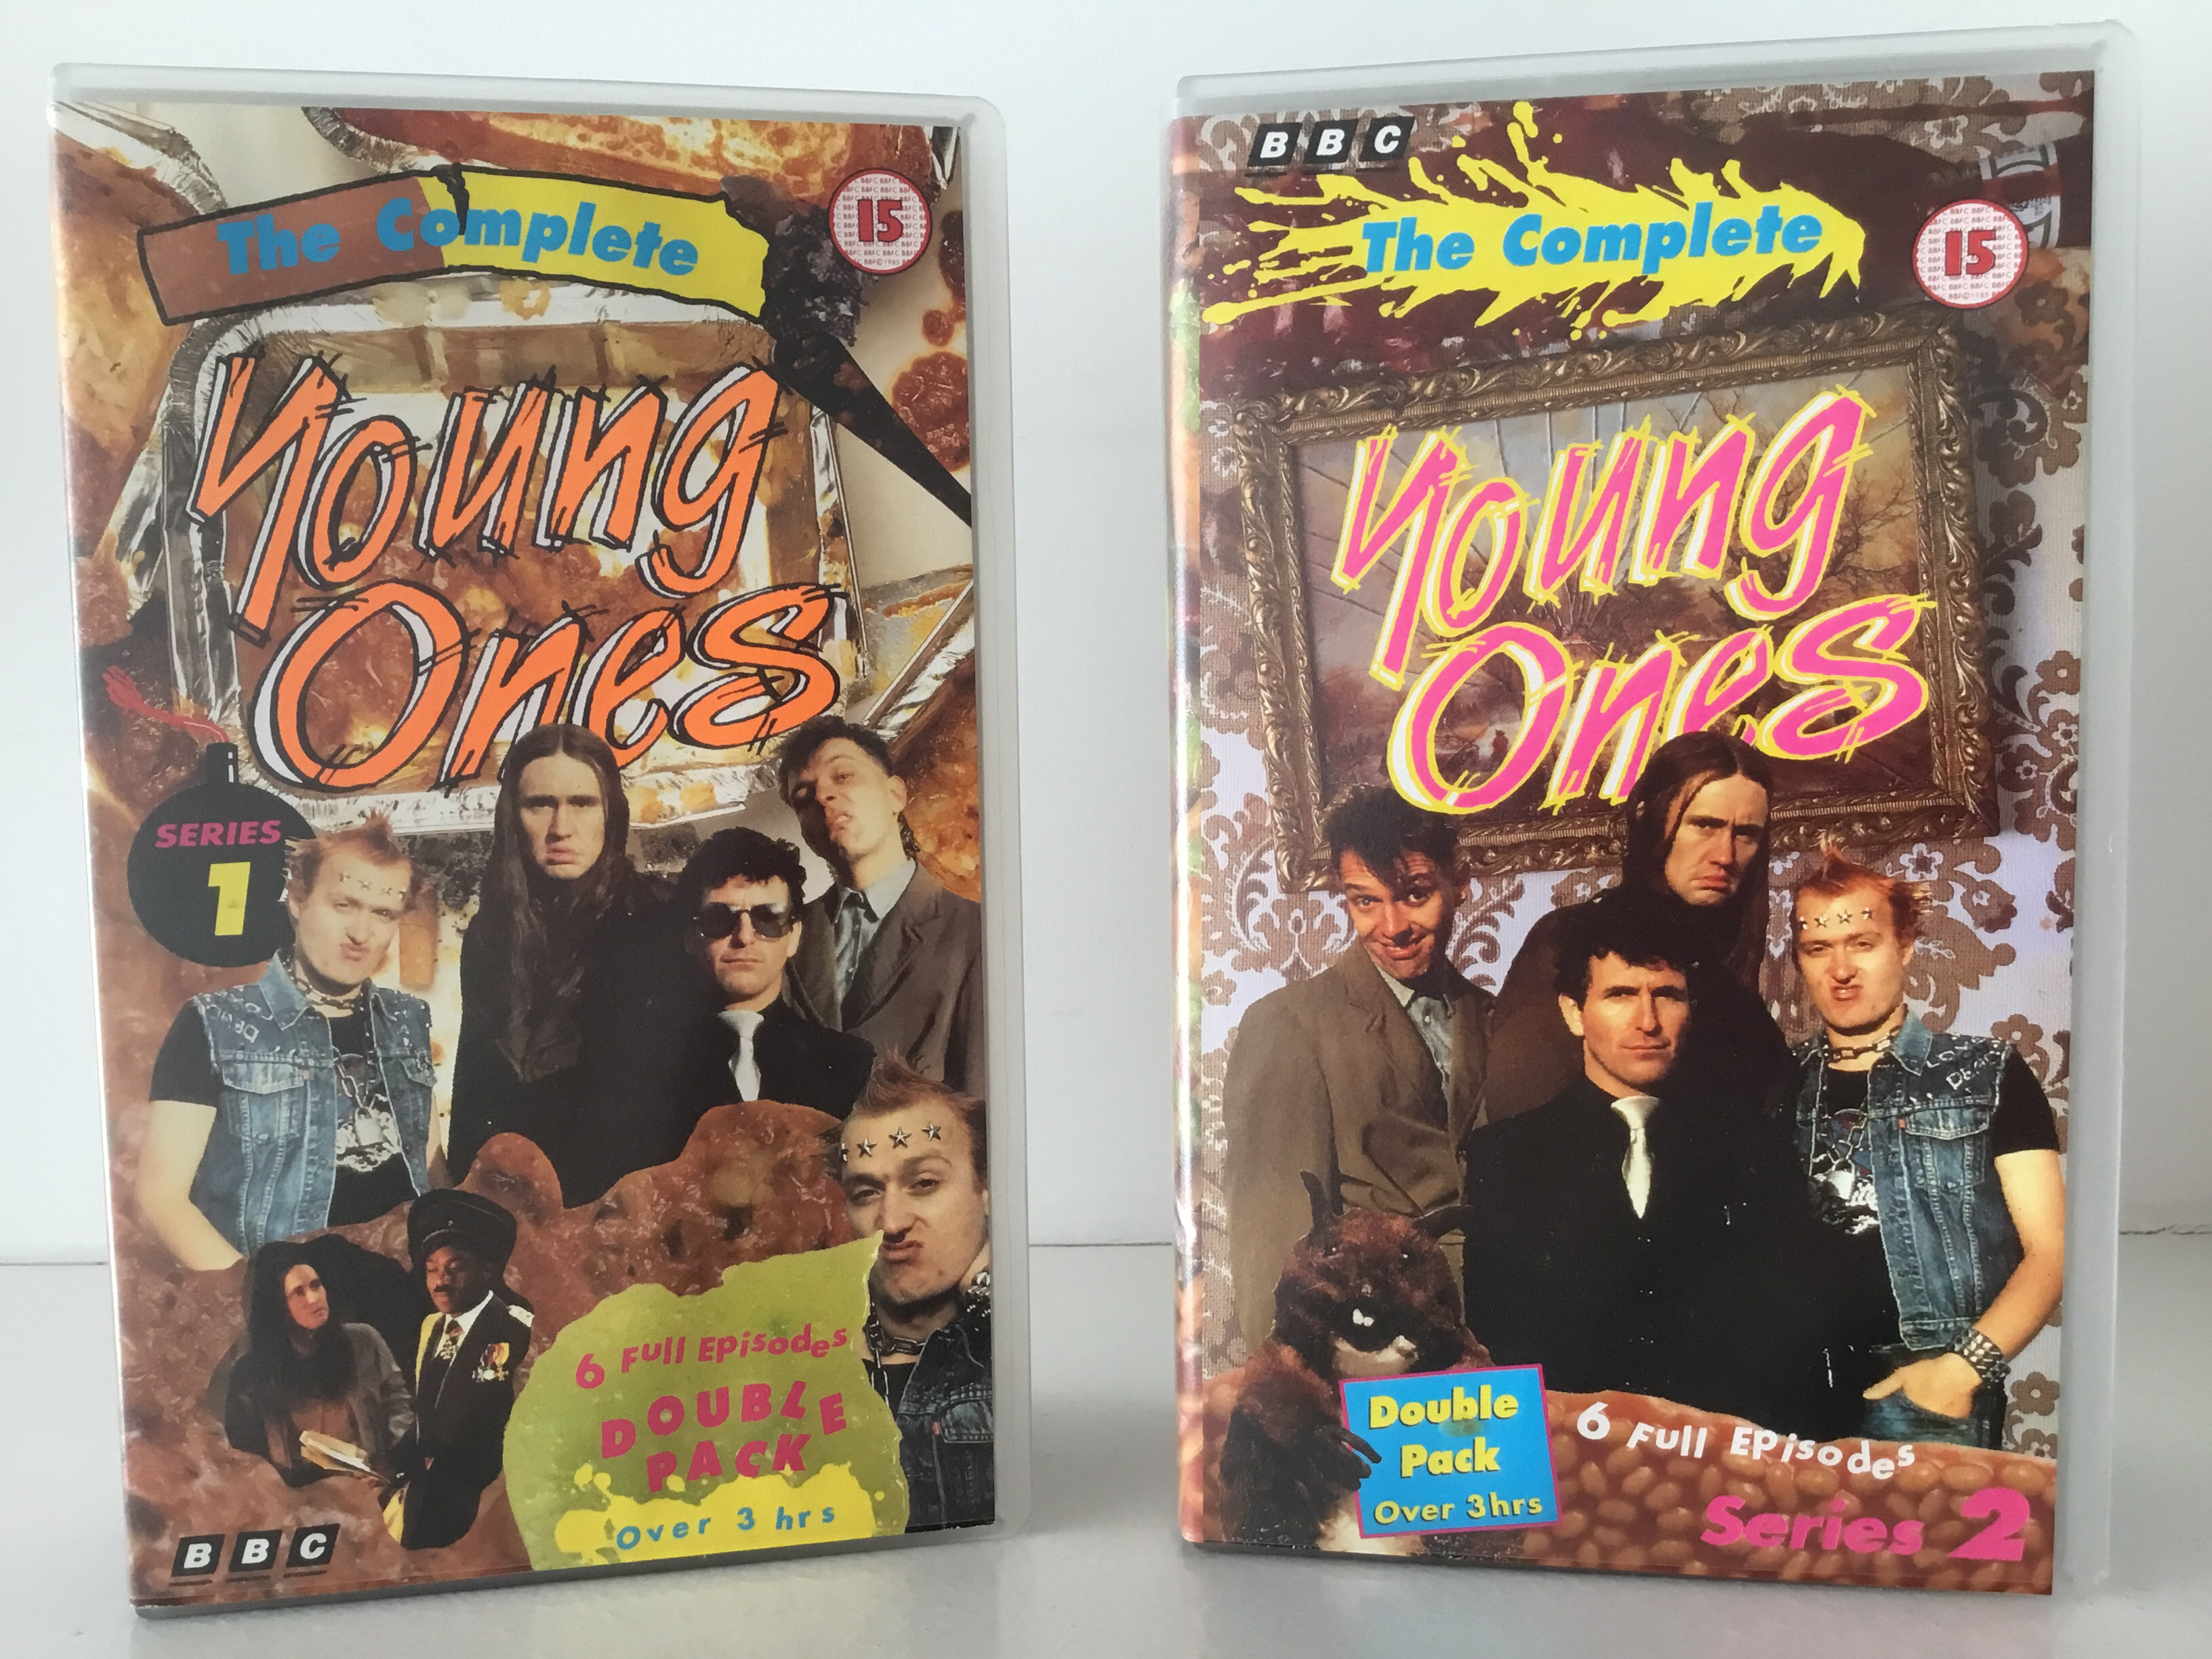 Two double pack editions of the young ones on VHS